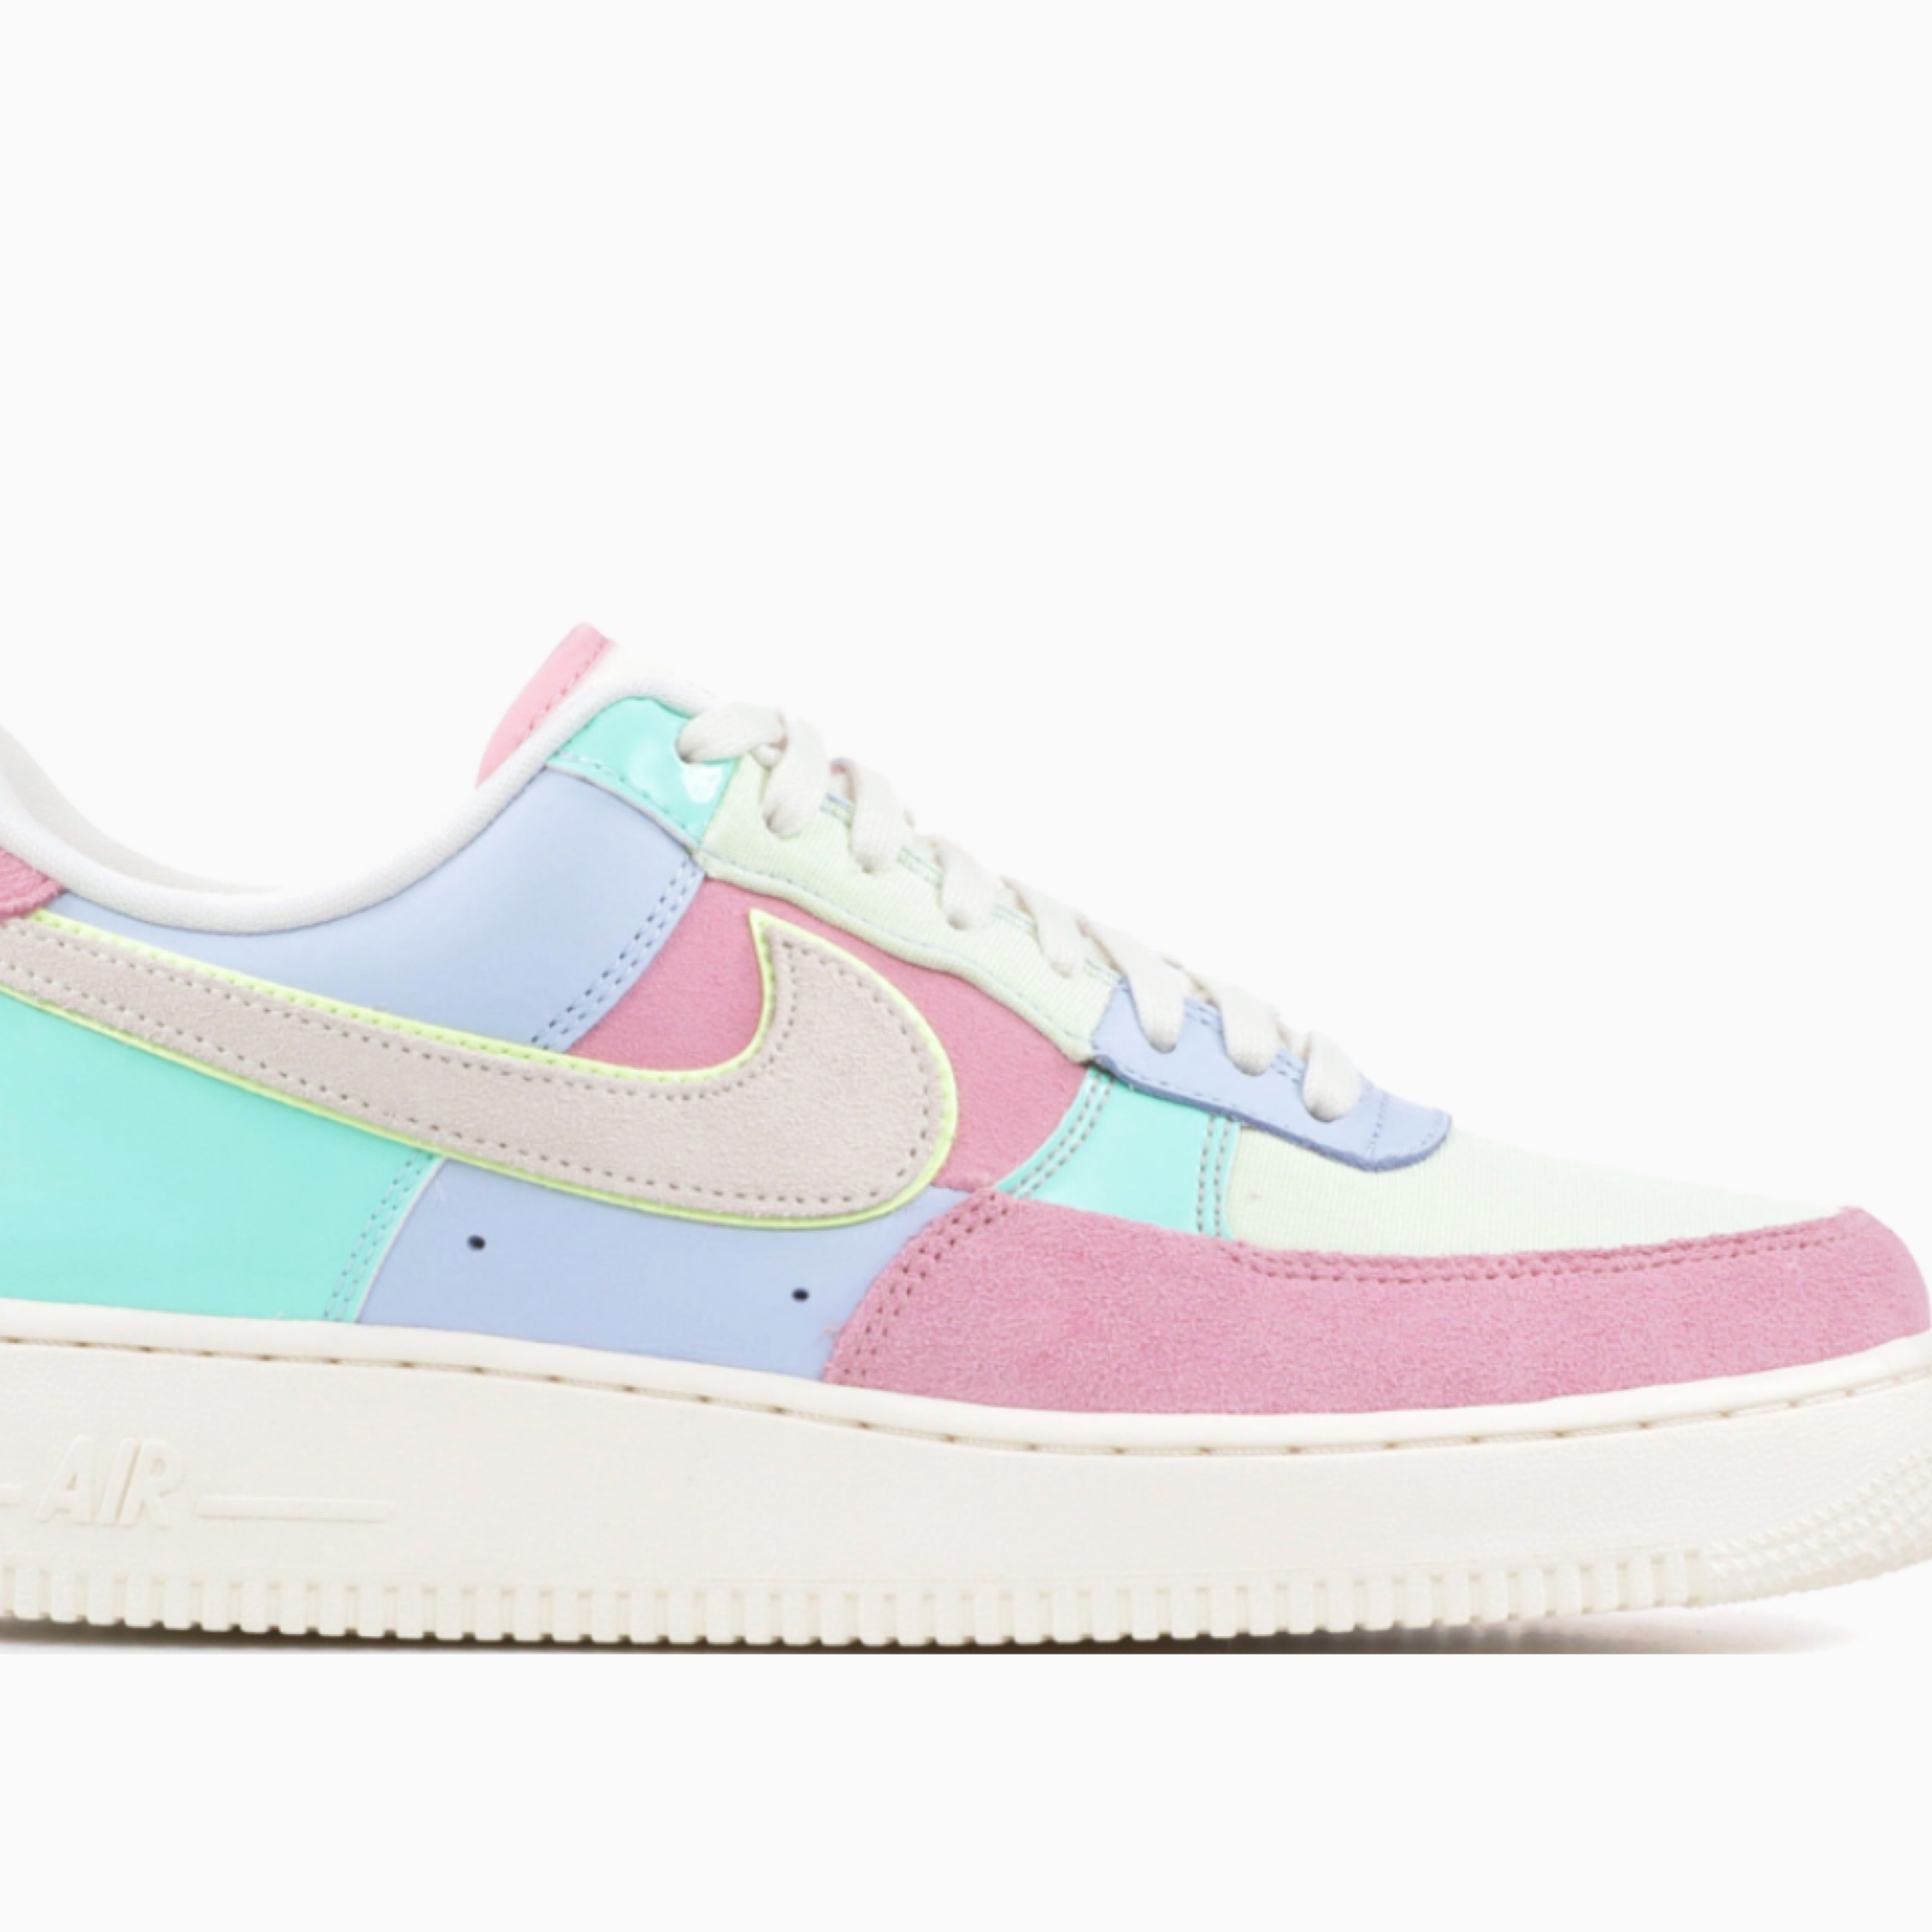 on sale 789ee d6522 Nike Air Force 1 Low Easter (2018)